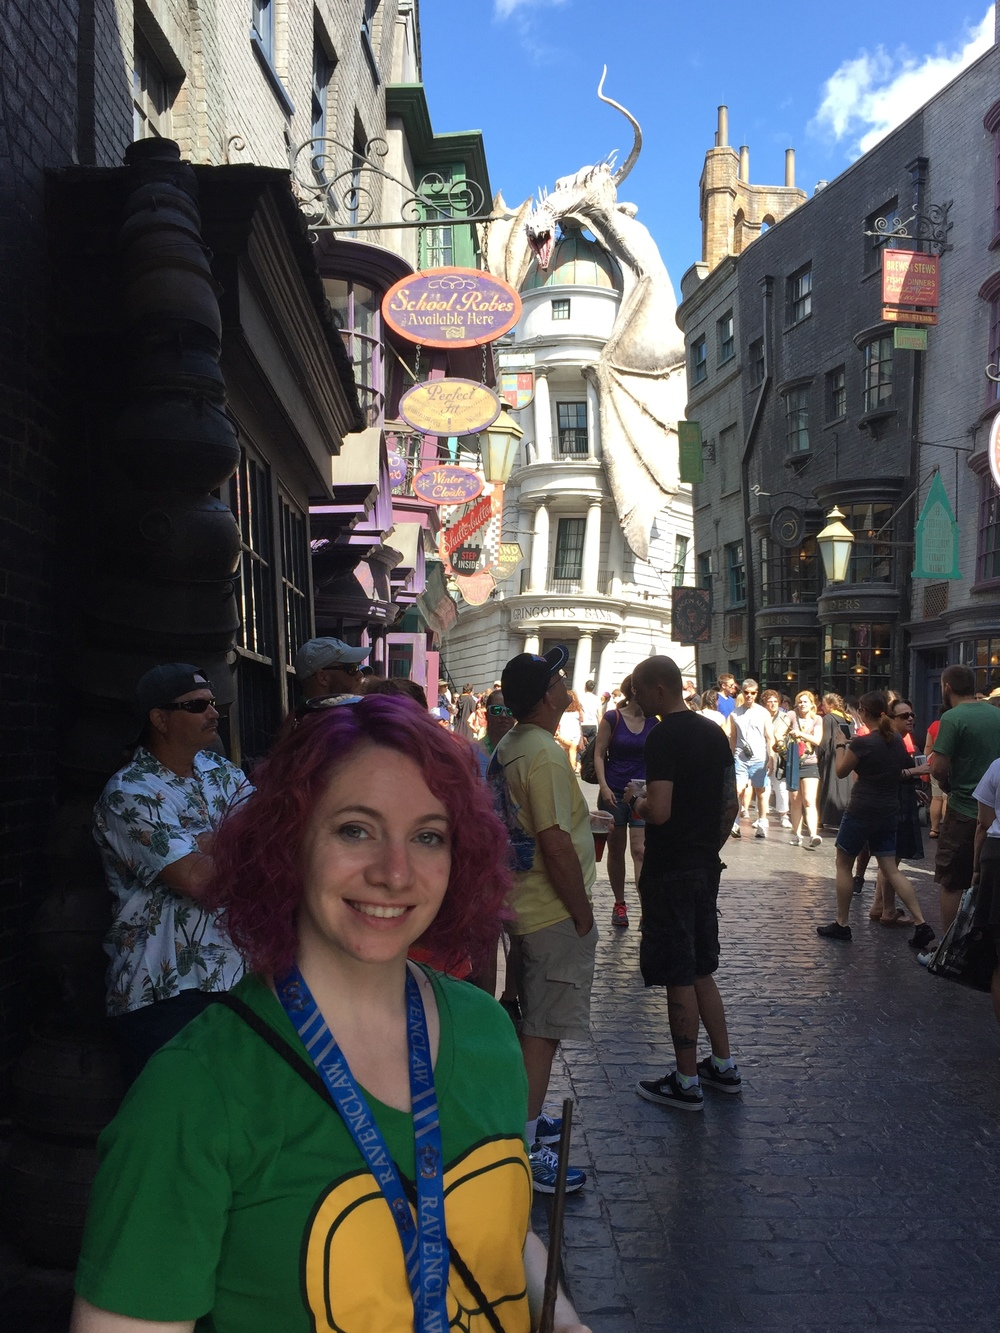 Hanging out in Diagon Alley.